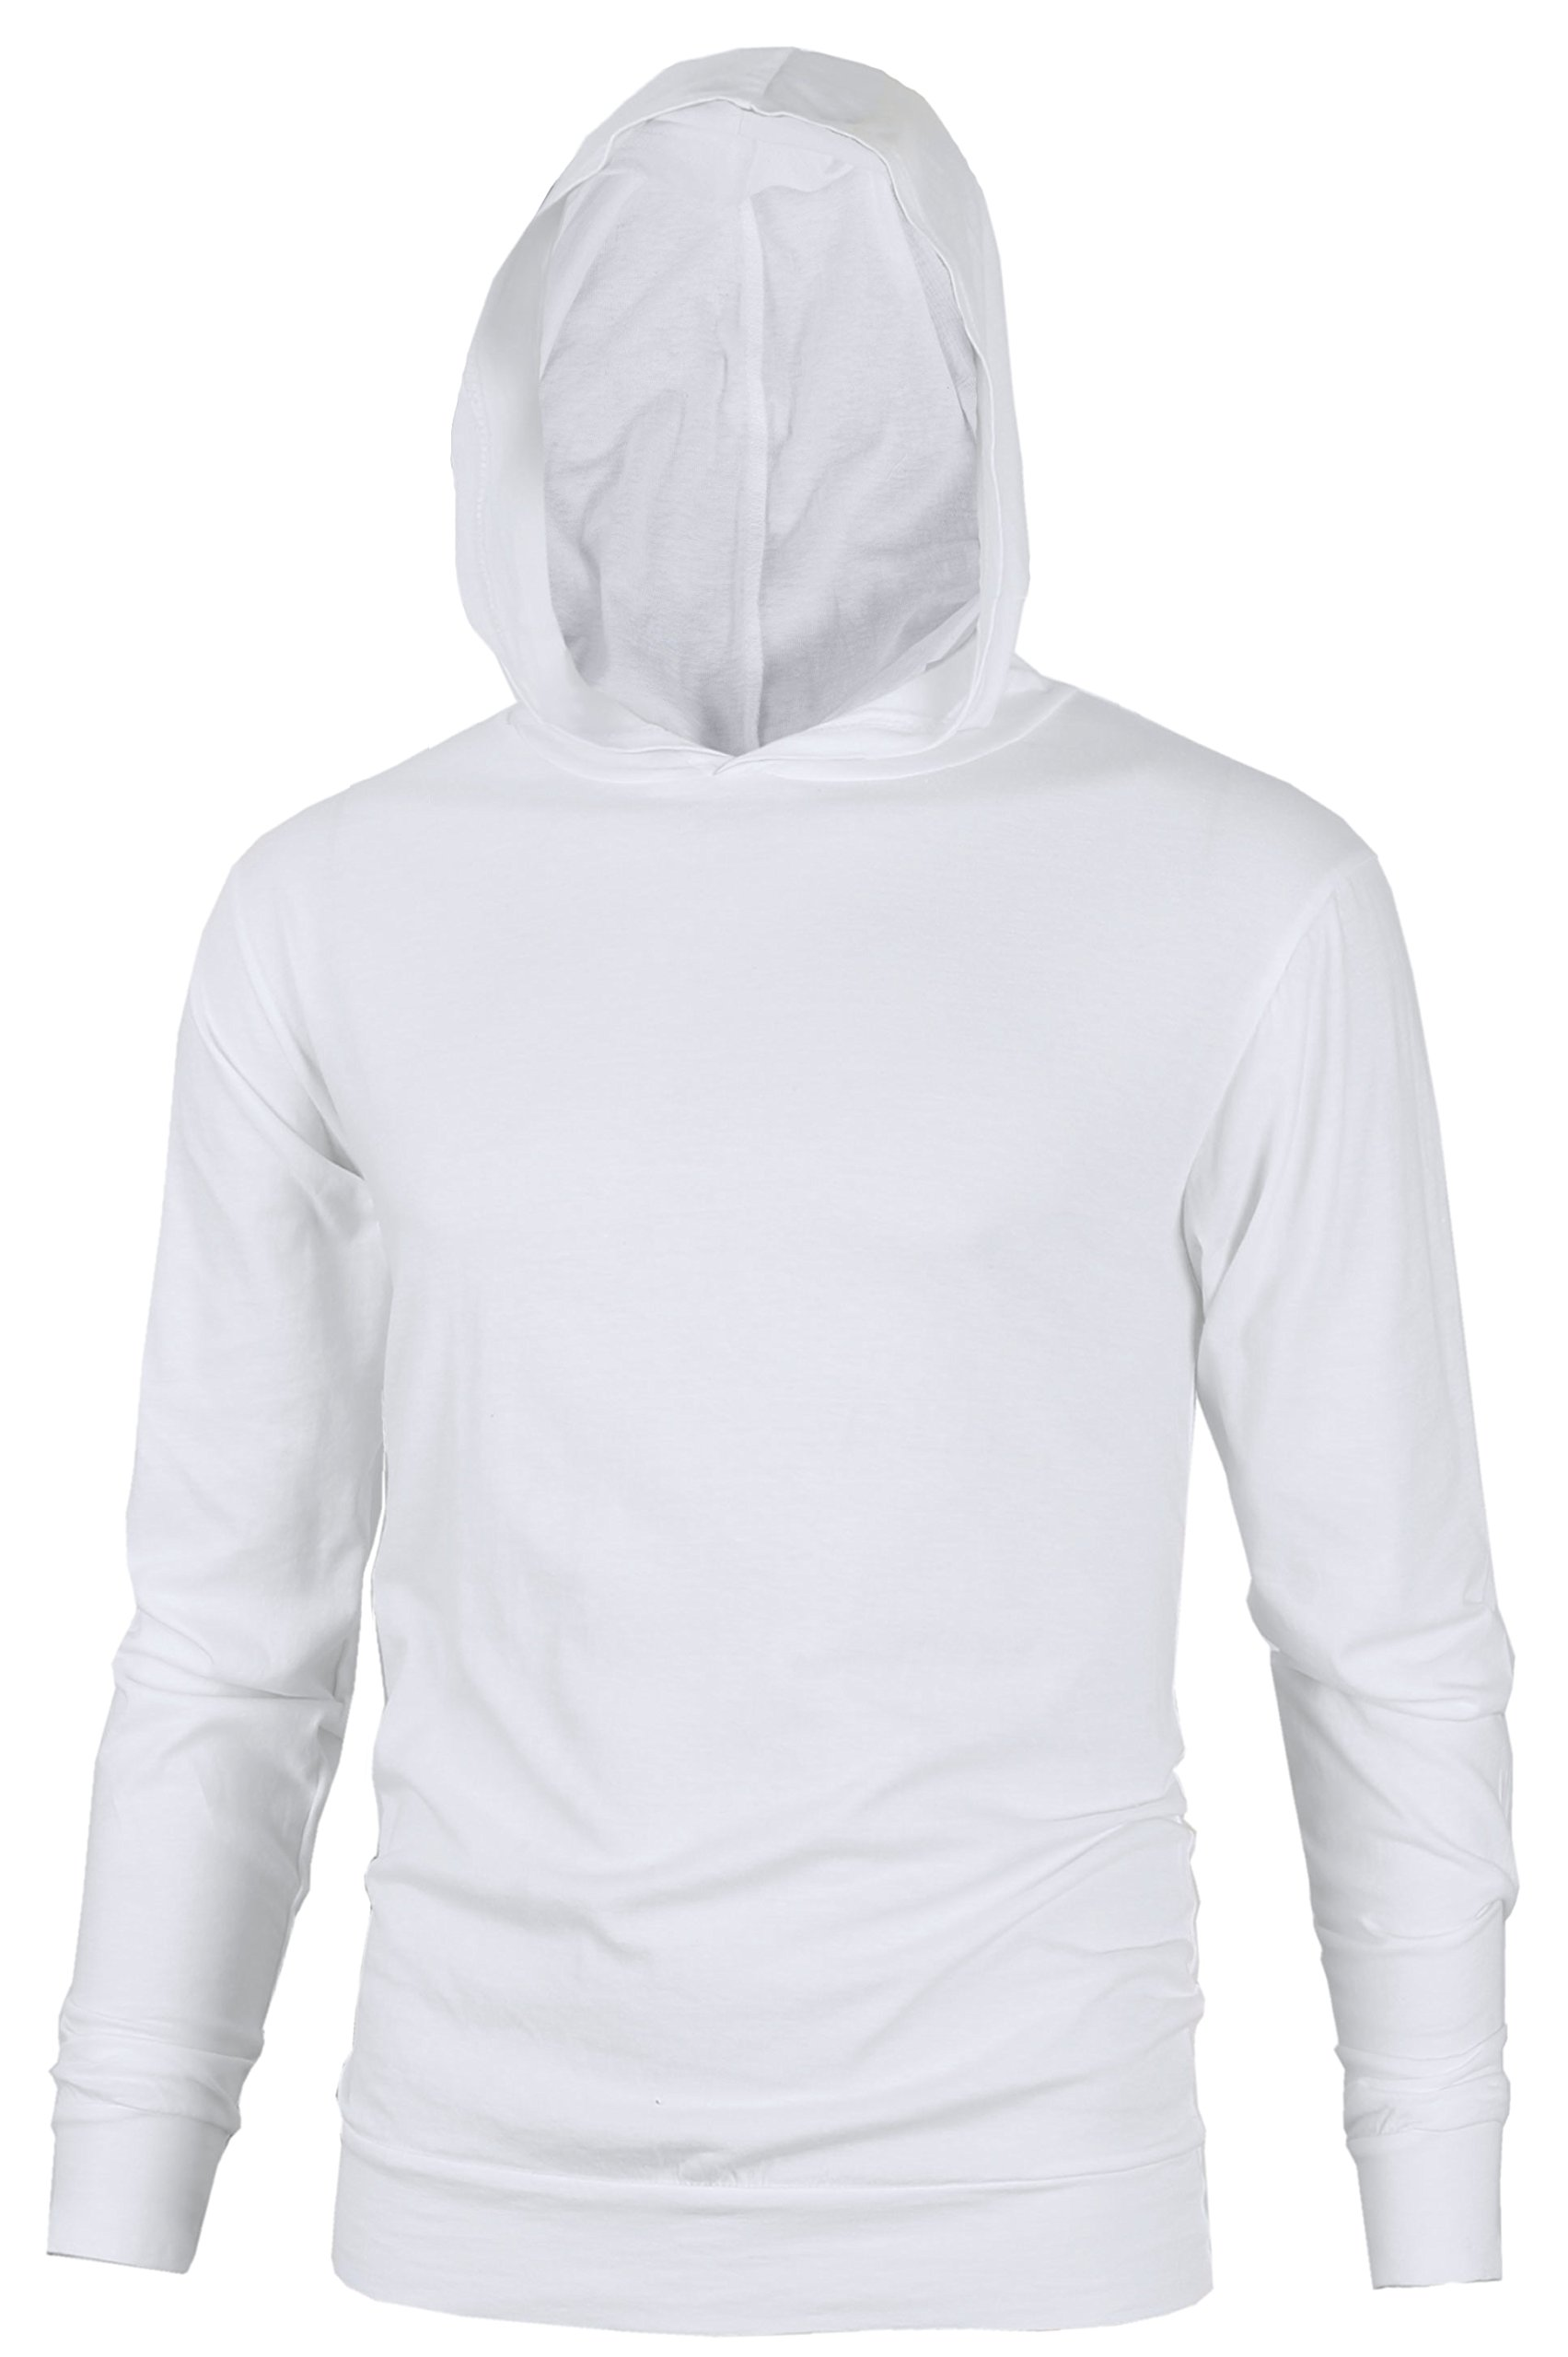 MAJECLO Mens Lightweight Cotton Pullover Long Sleeve Hoodie Sweatshirt(Large,White)